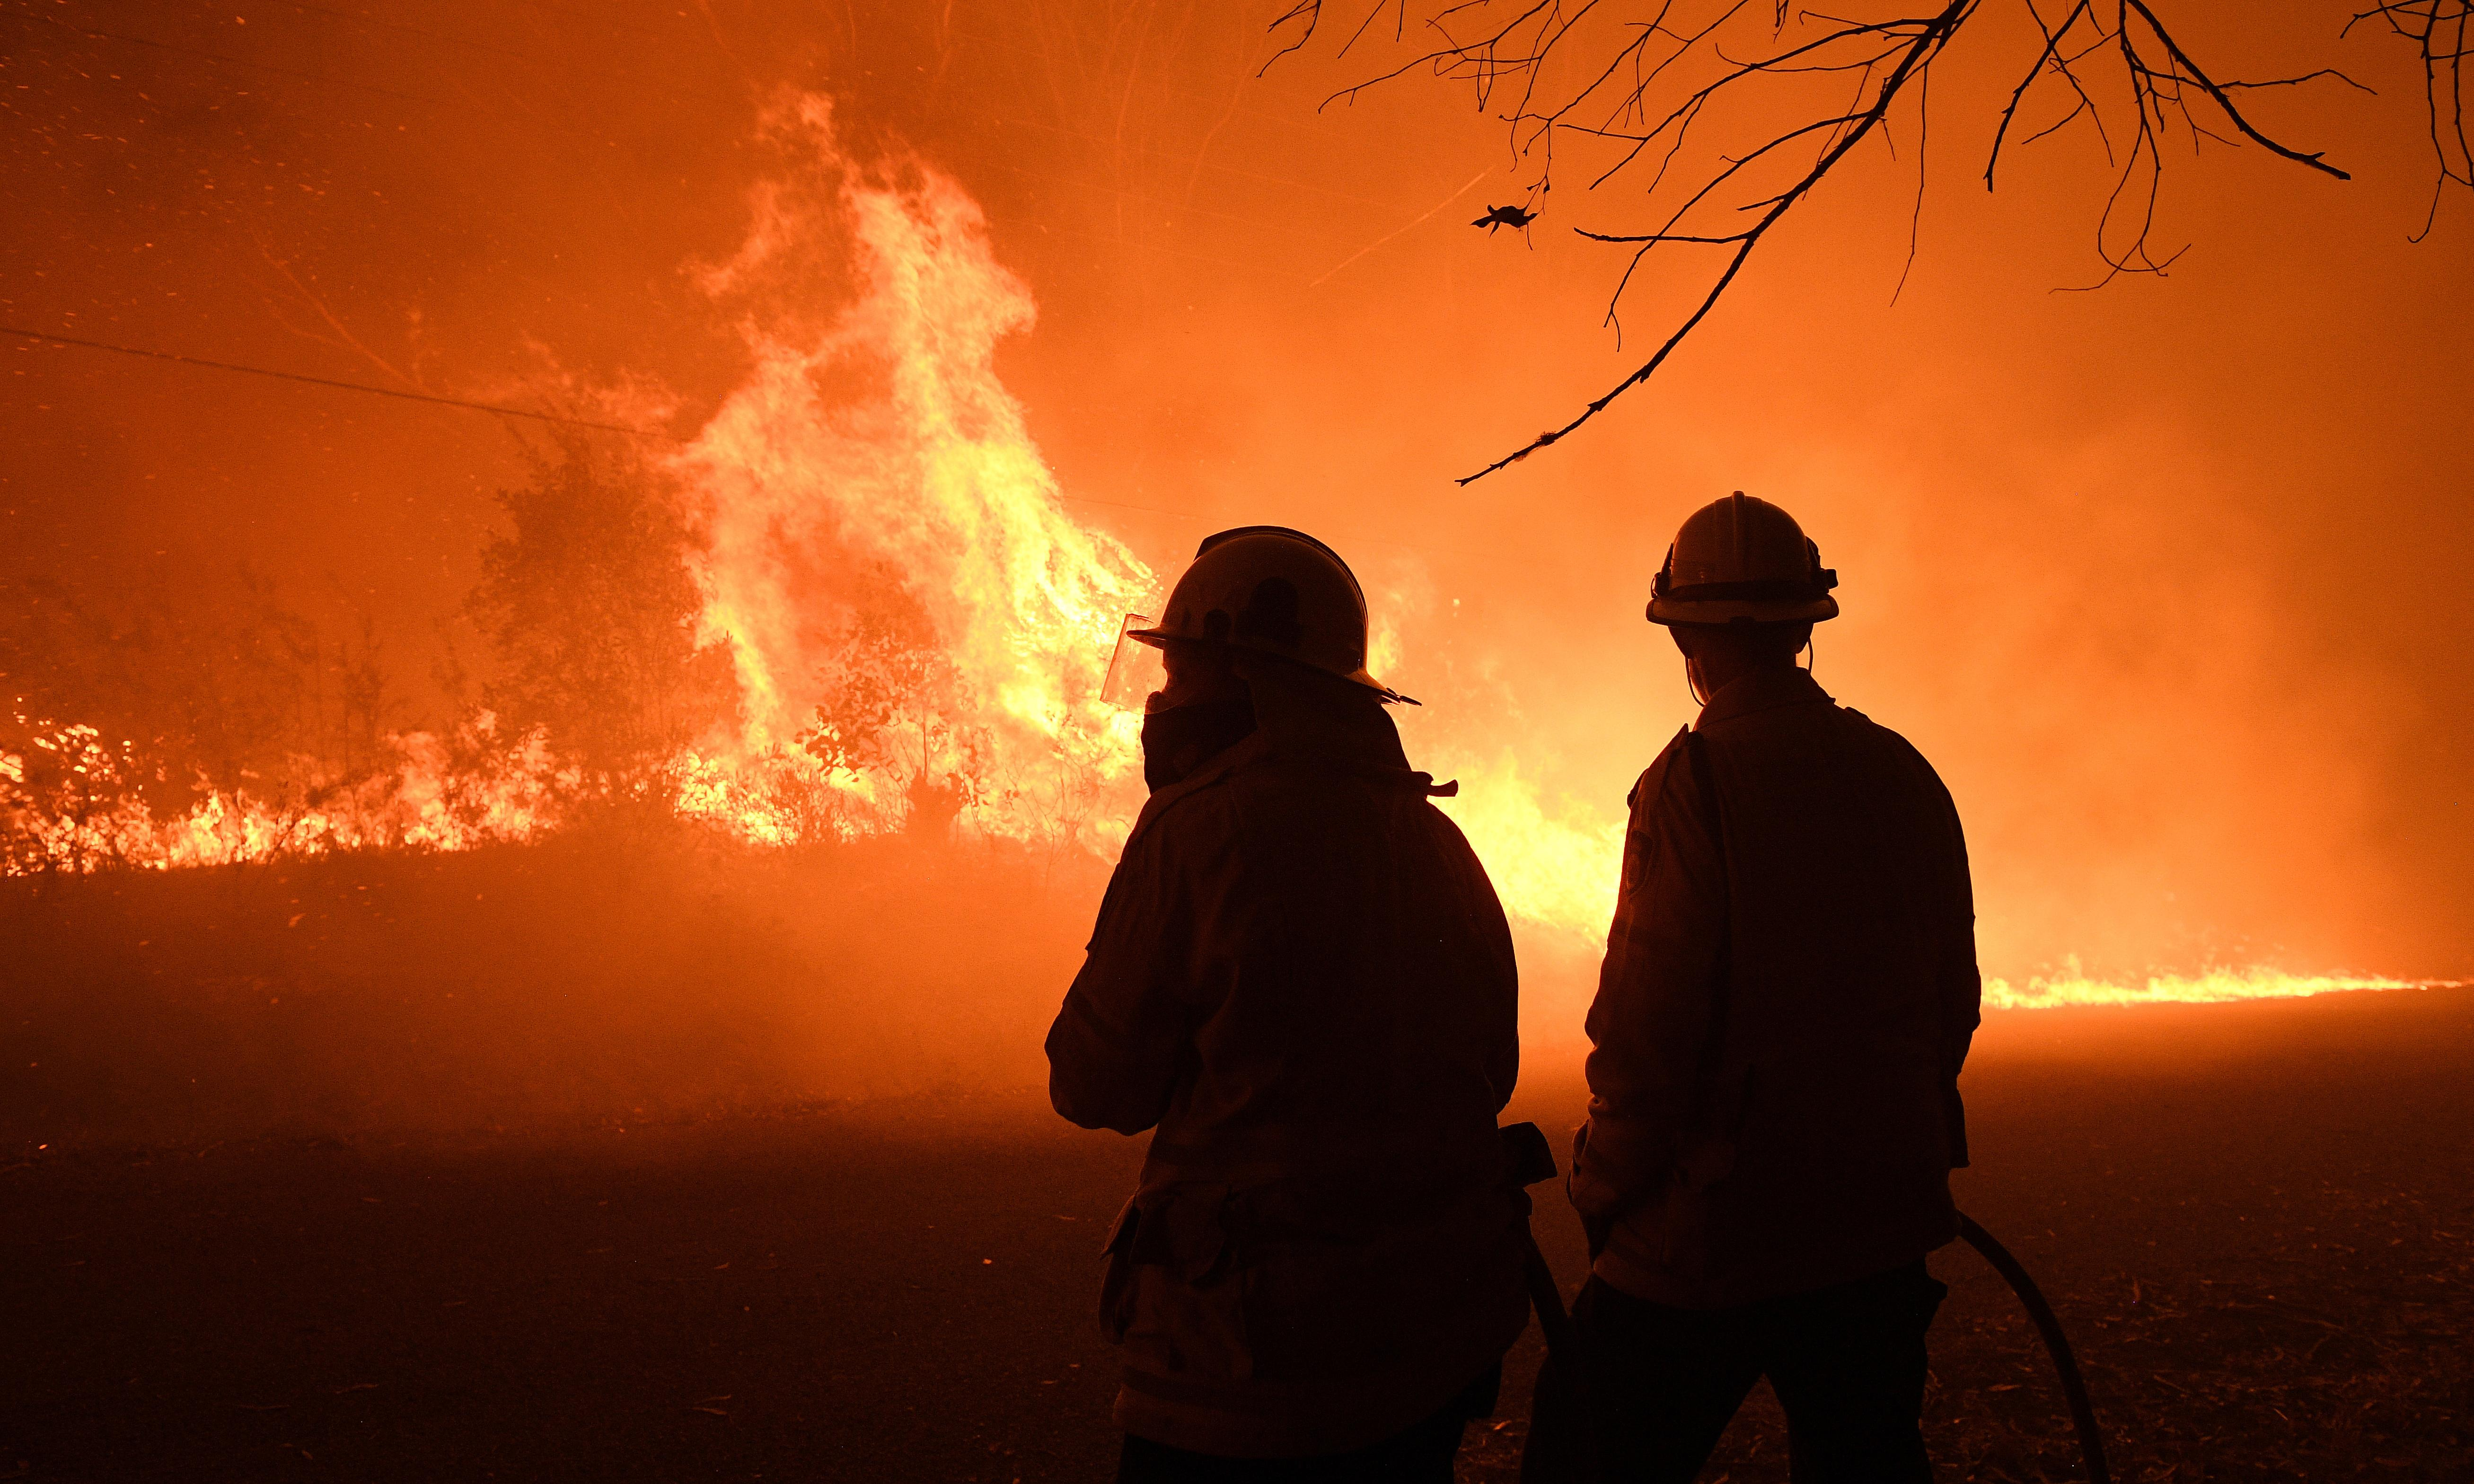 Dozens of out-of-control bushfires burn across NSW as conditions expected to worsen